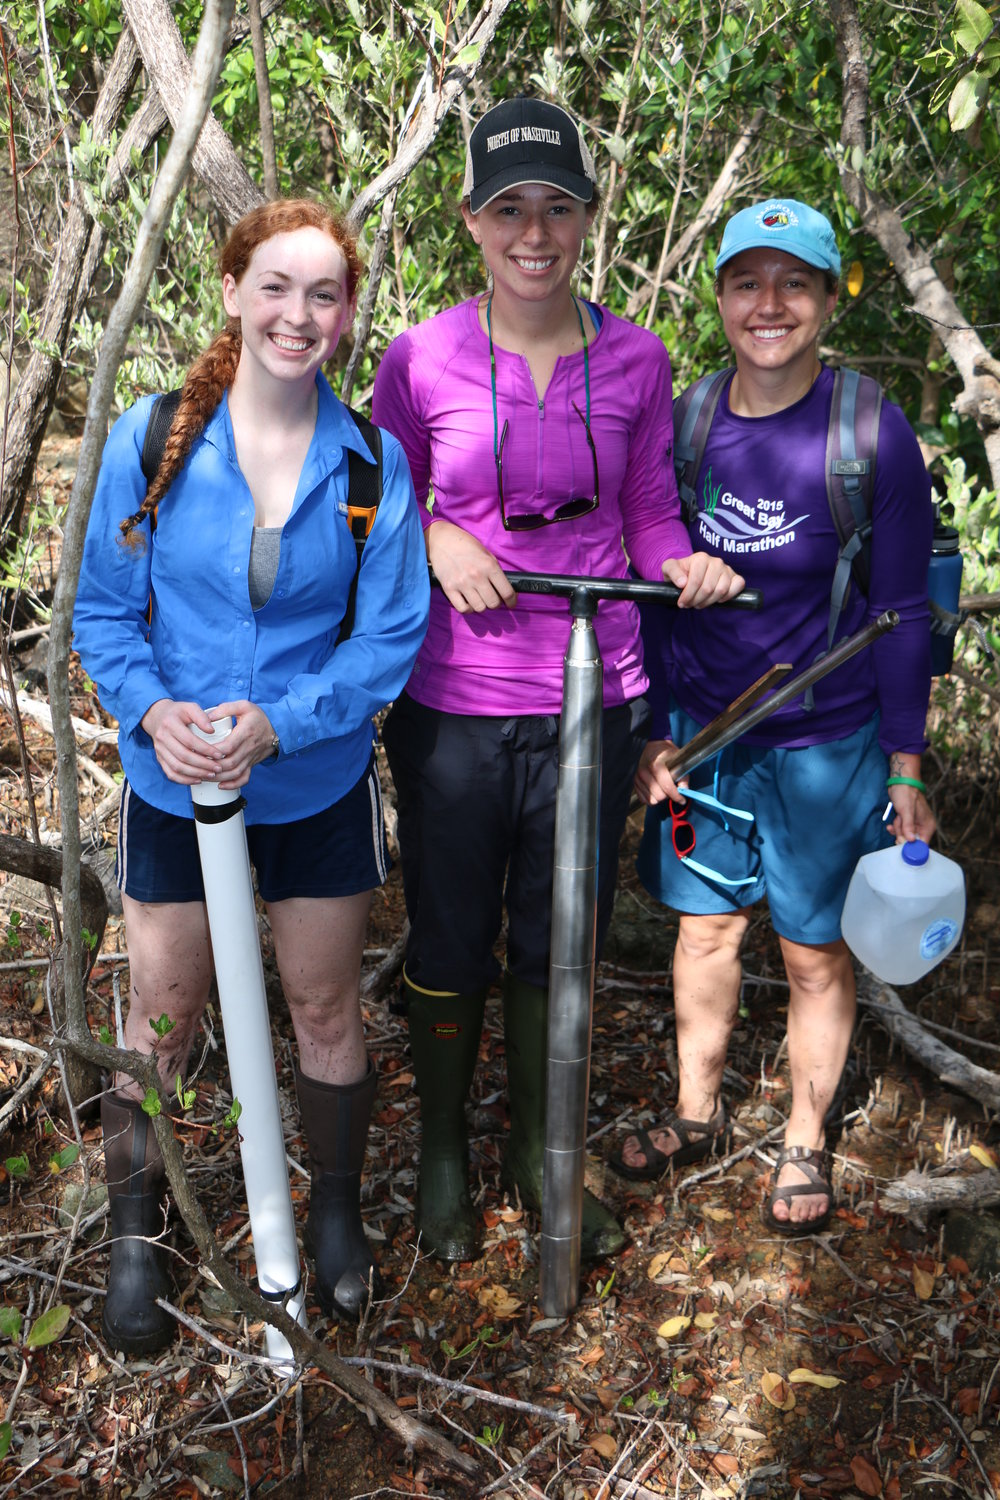 Amelie, center, is seen here with fellow researchers Allie Durdall and Sydney Nick.